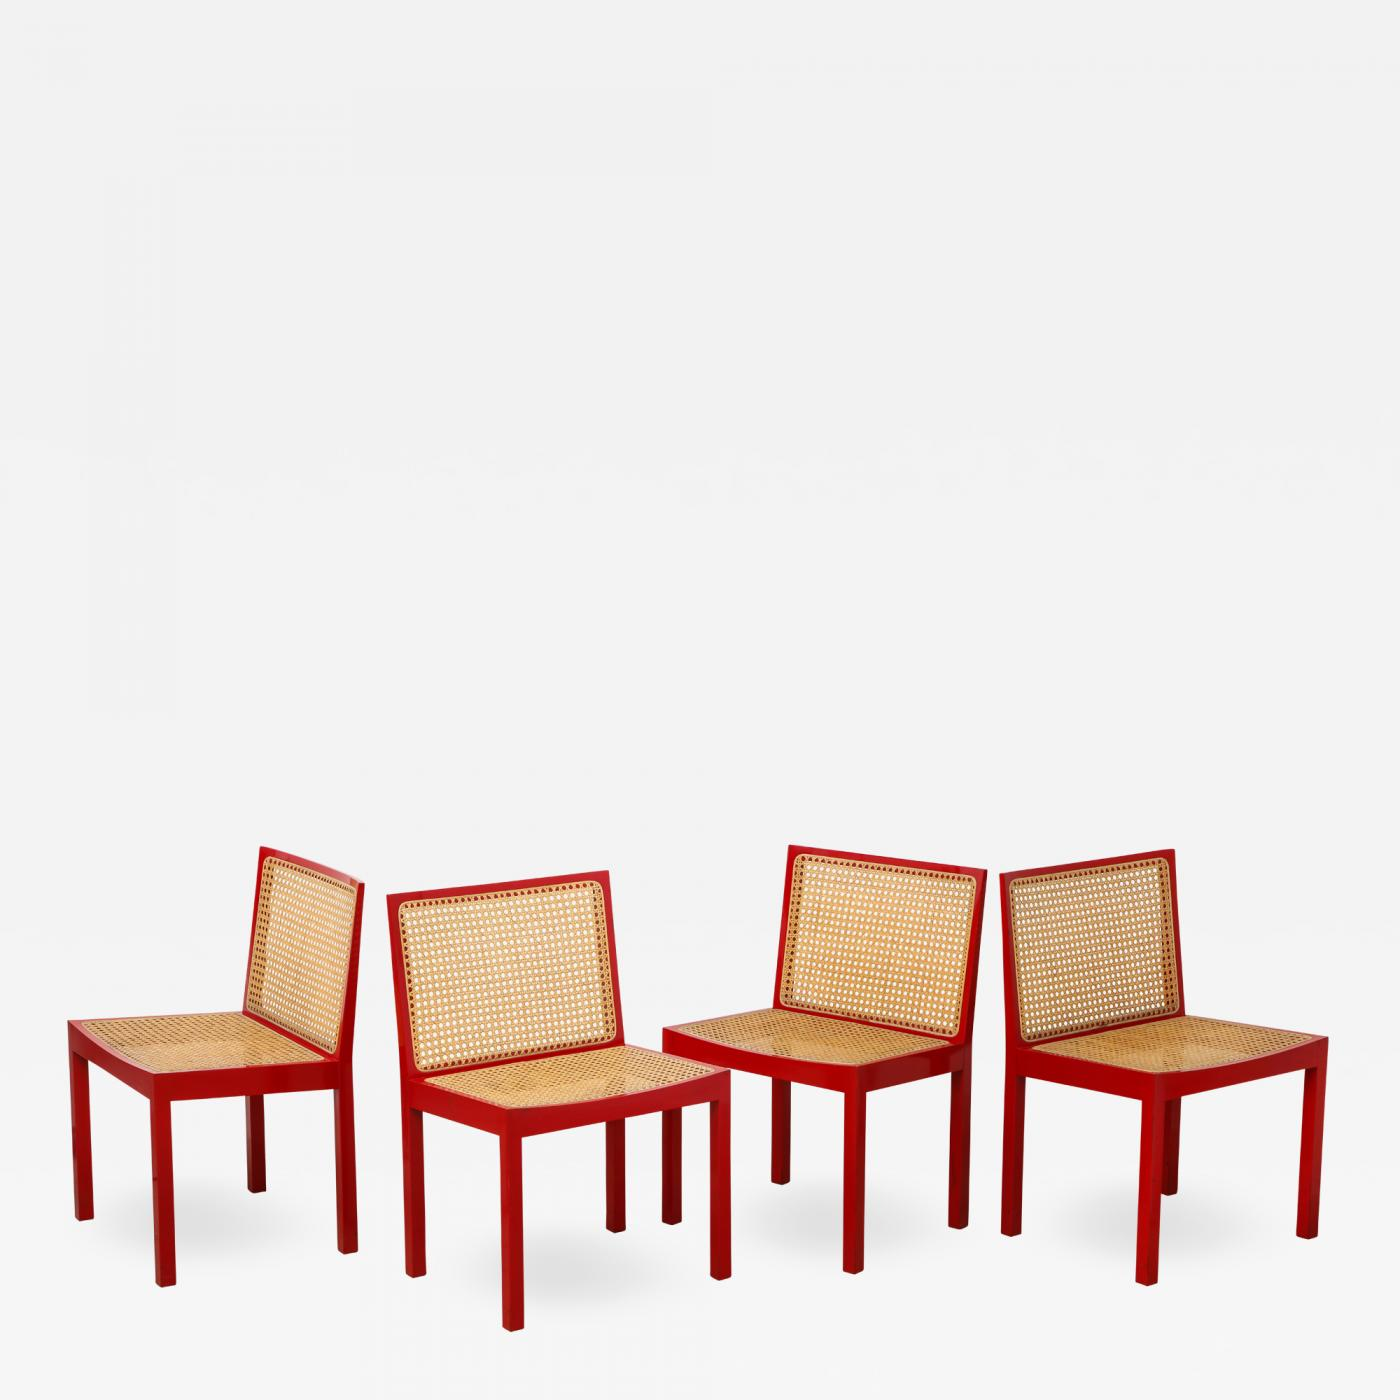 Gentil Listings / Furniture / Seating / Dining Chairs